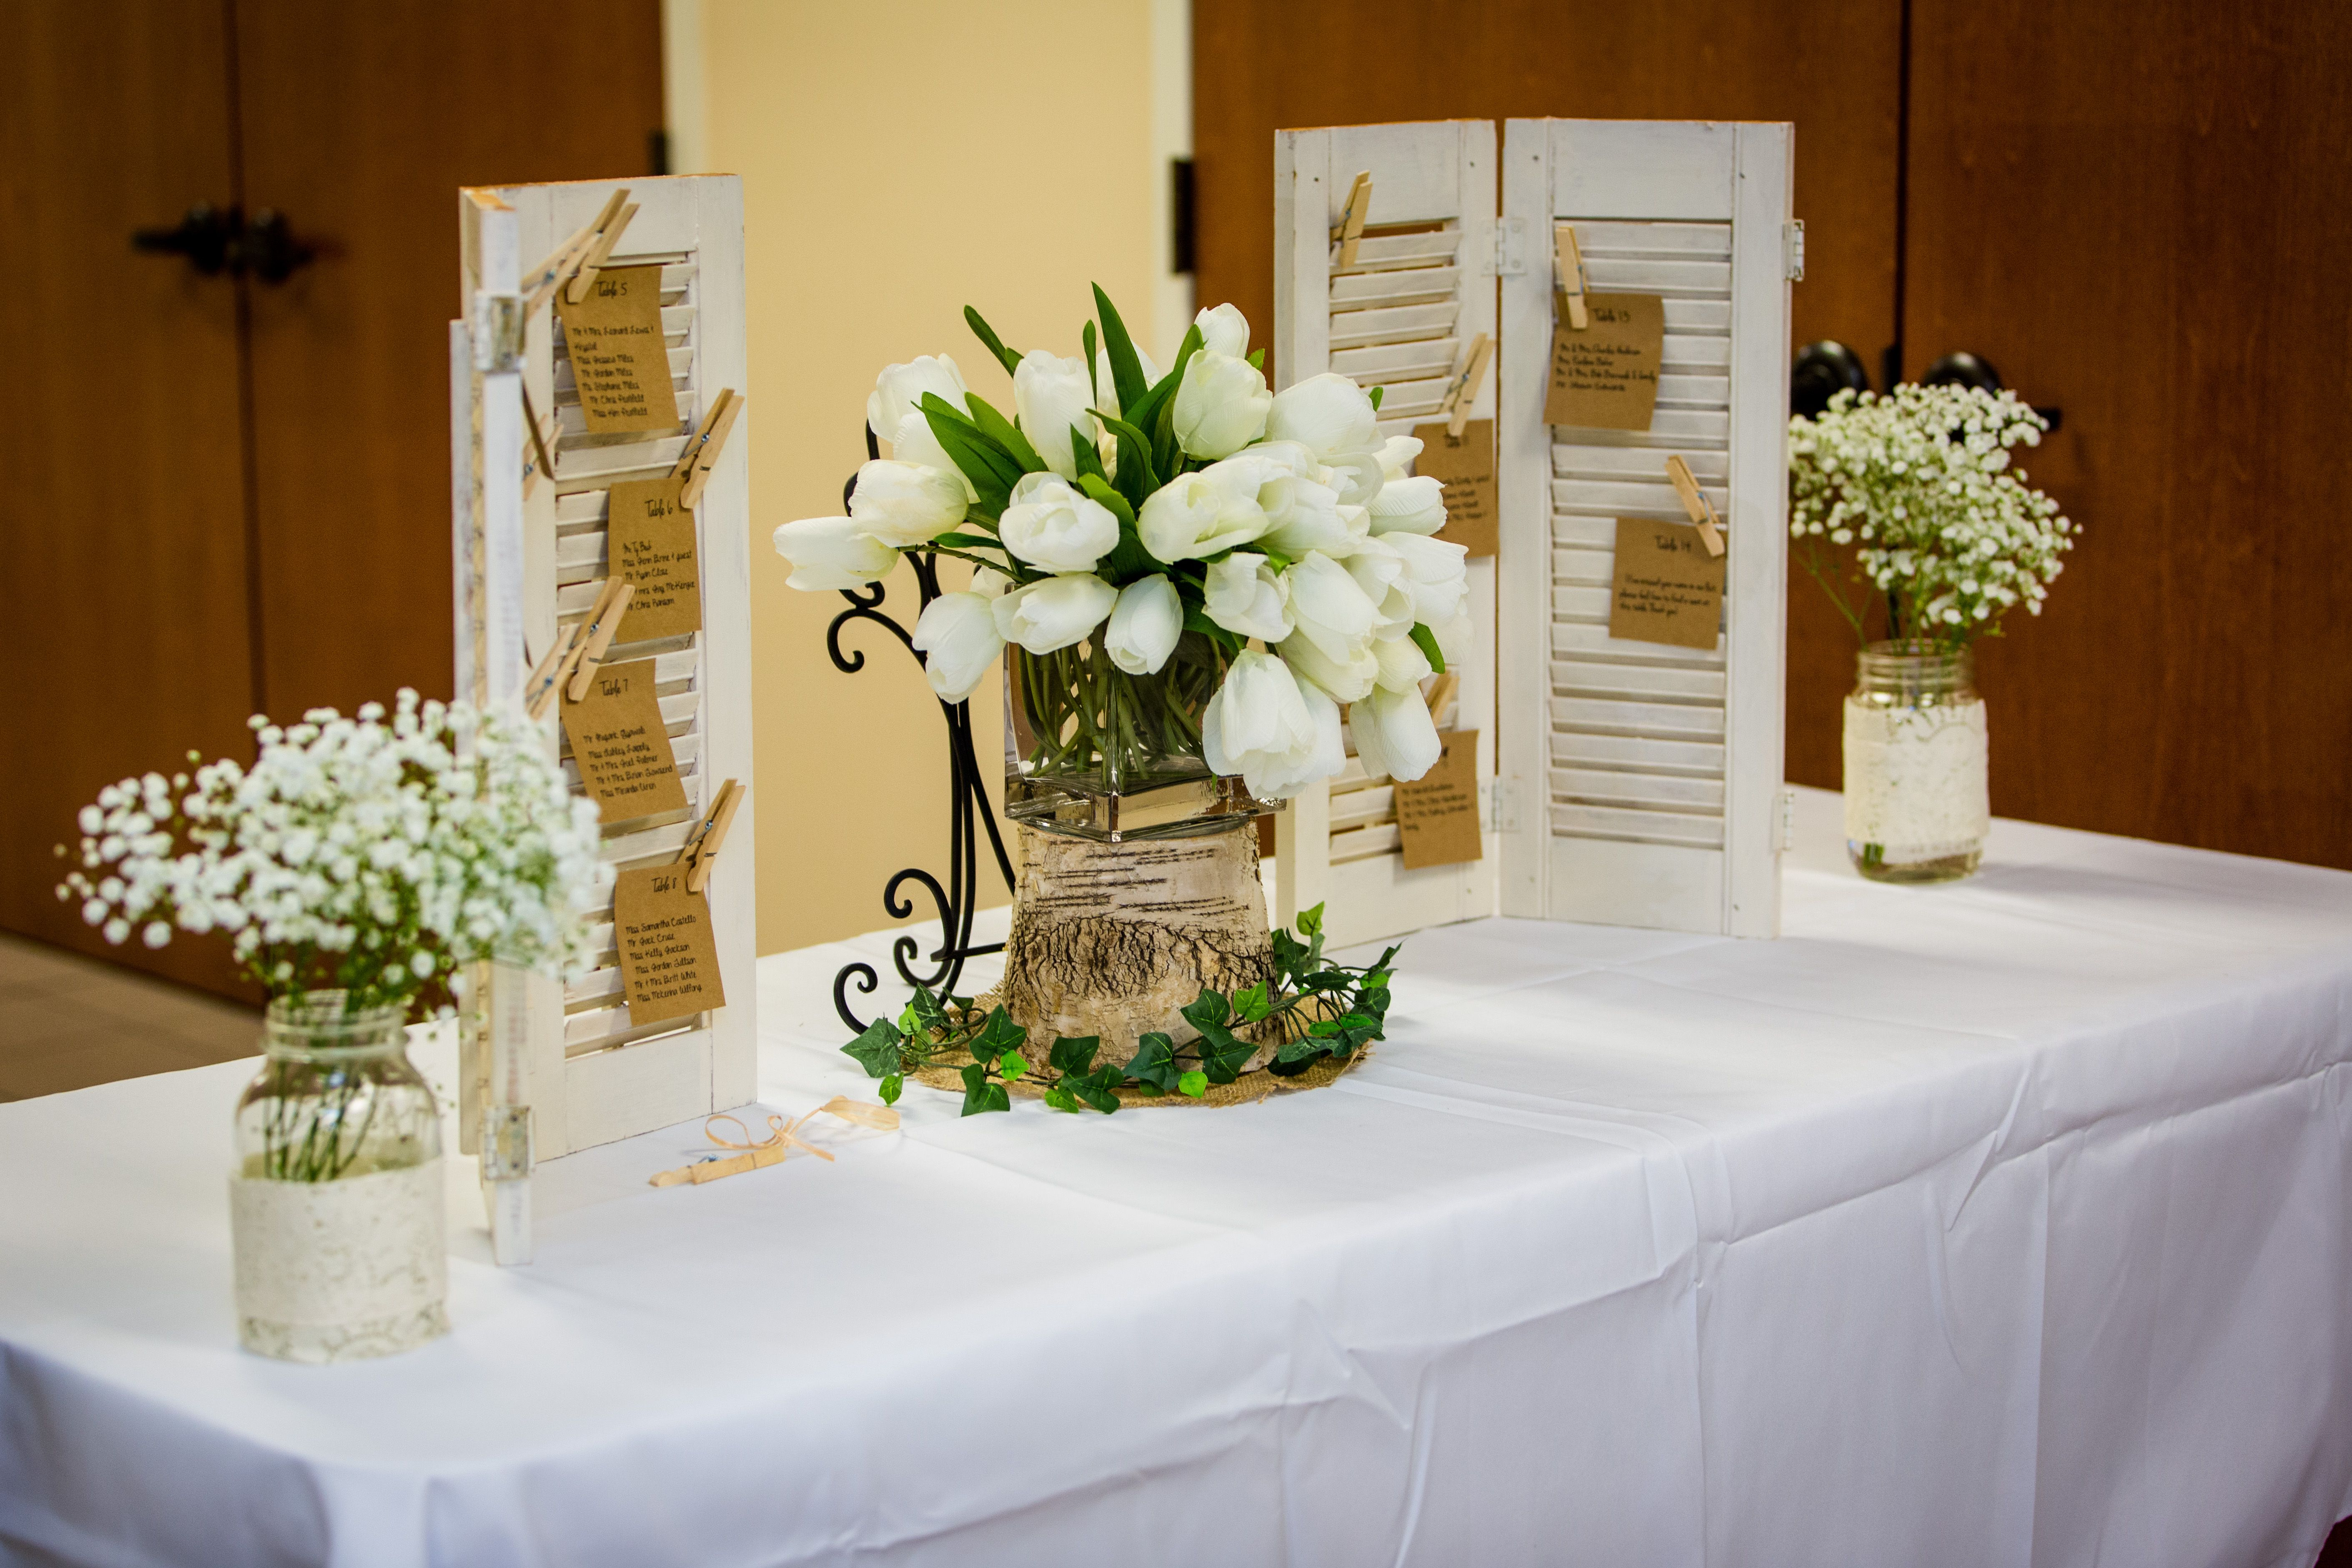 Tabletop White Rustic Shutters Joel And Amber Photography Thebridalcloset Wedding Rentals Decor Wedding Decorations Centerpiece Rentals